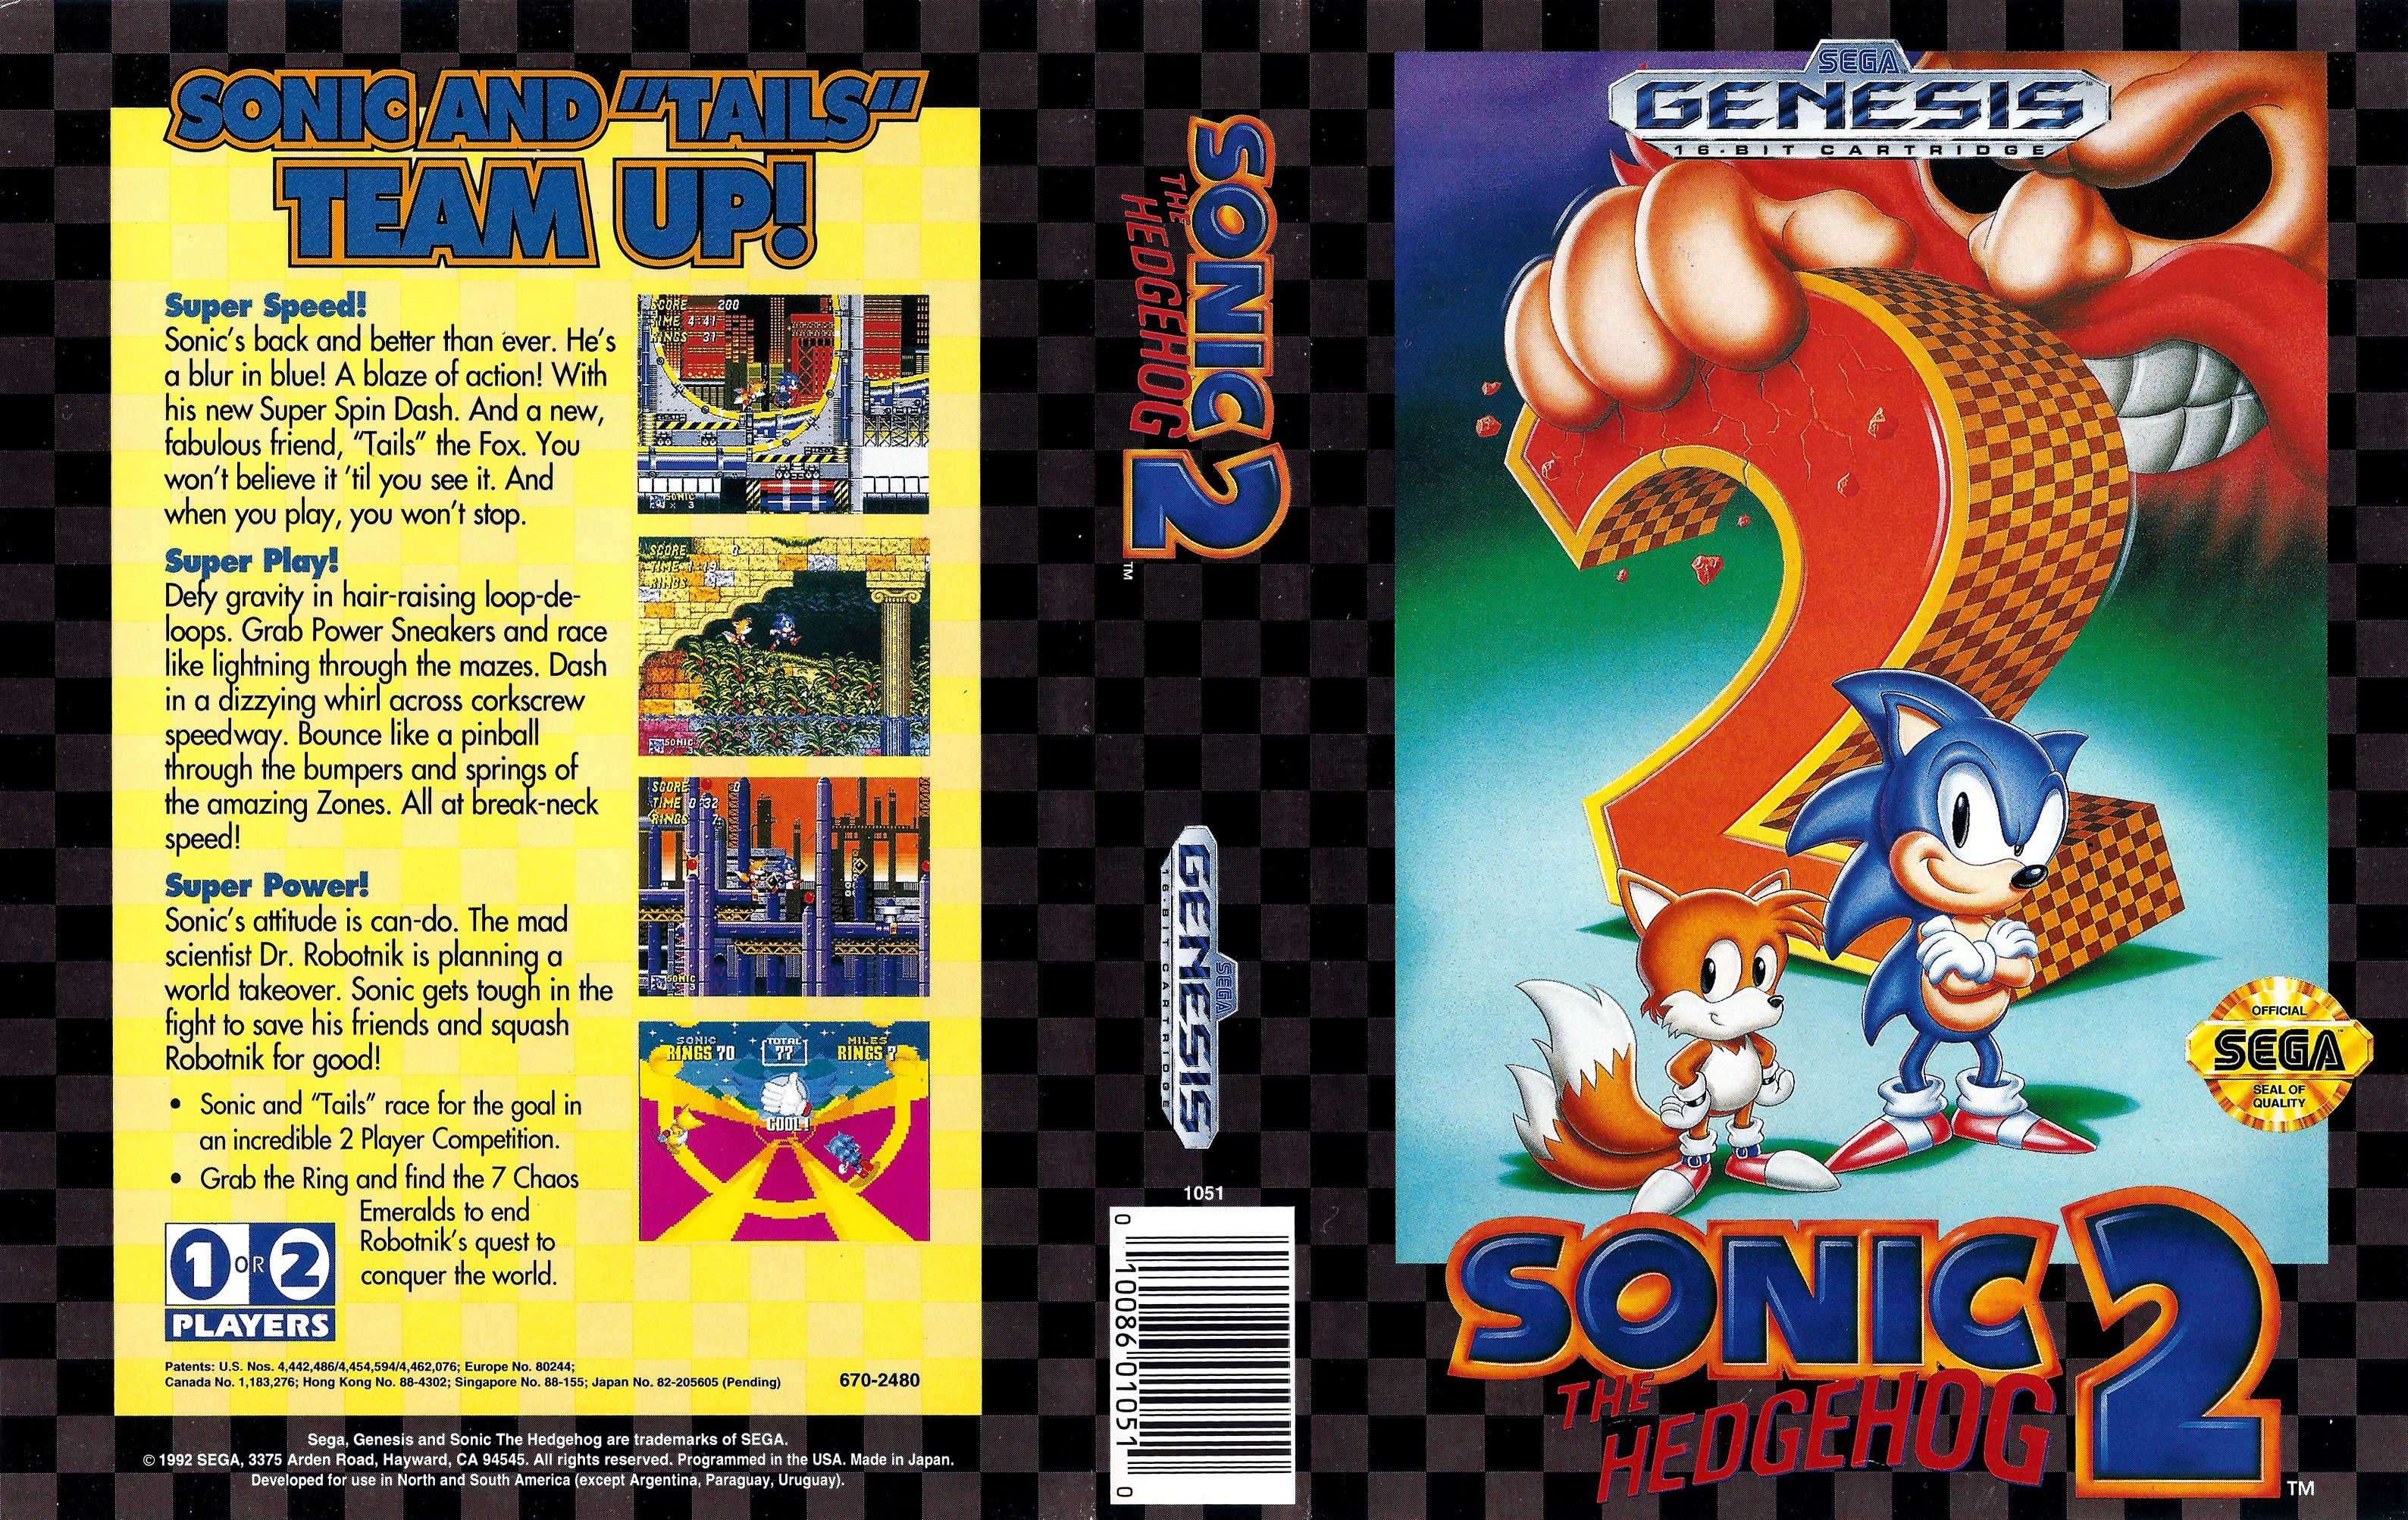 My Favorite Sonic Game Sonic The Hedgehog Video Game Design Sonic